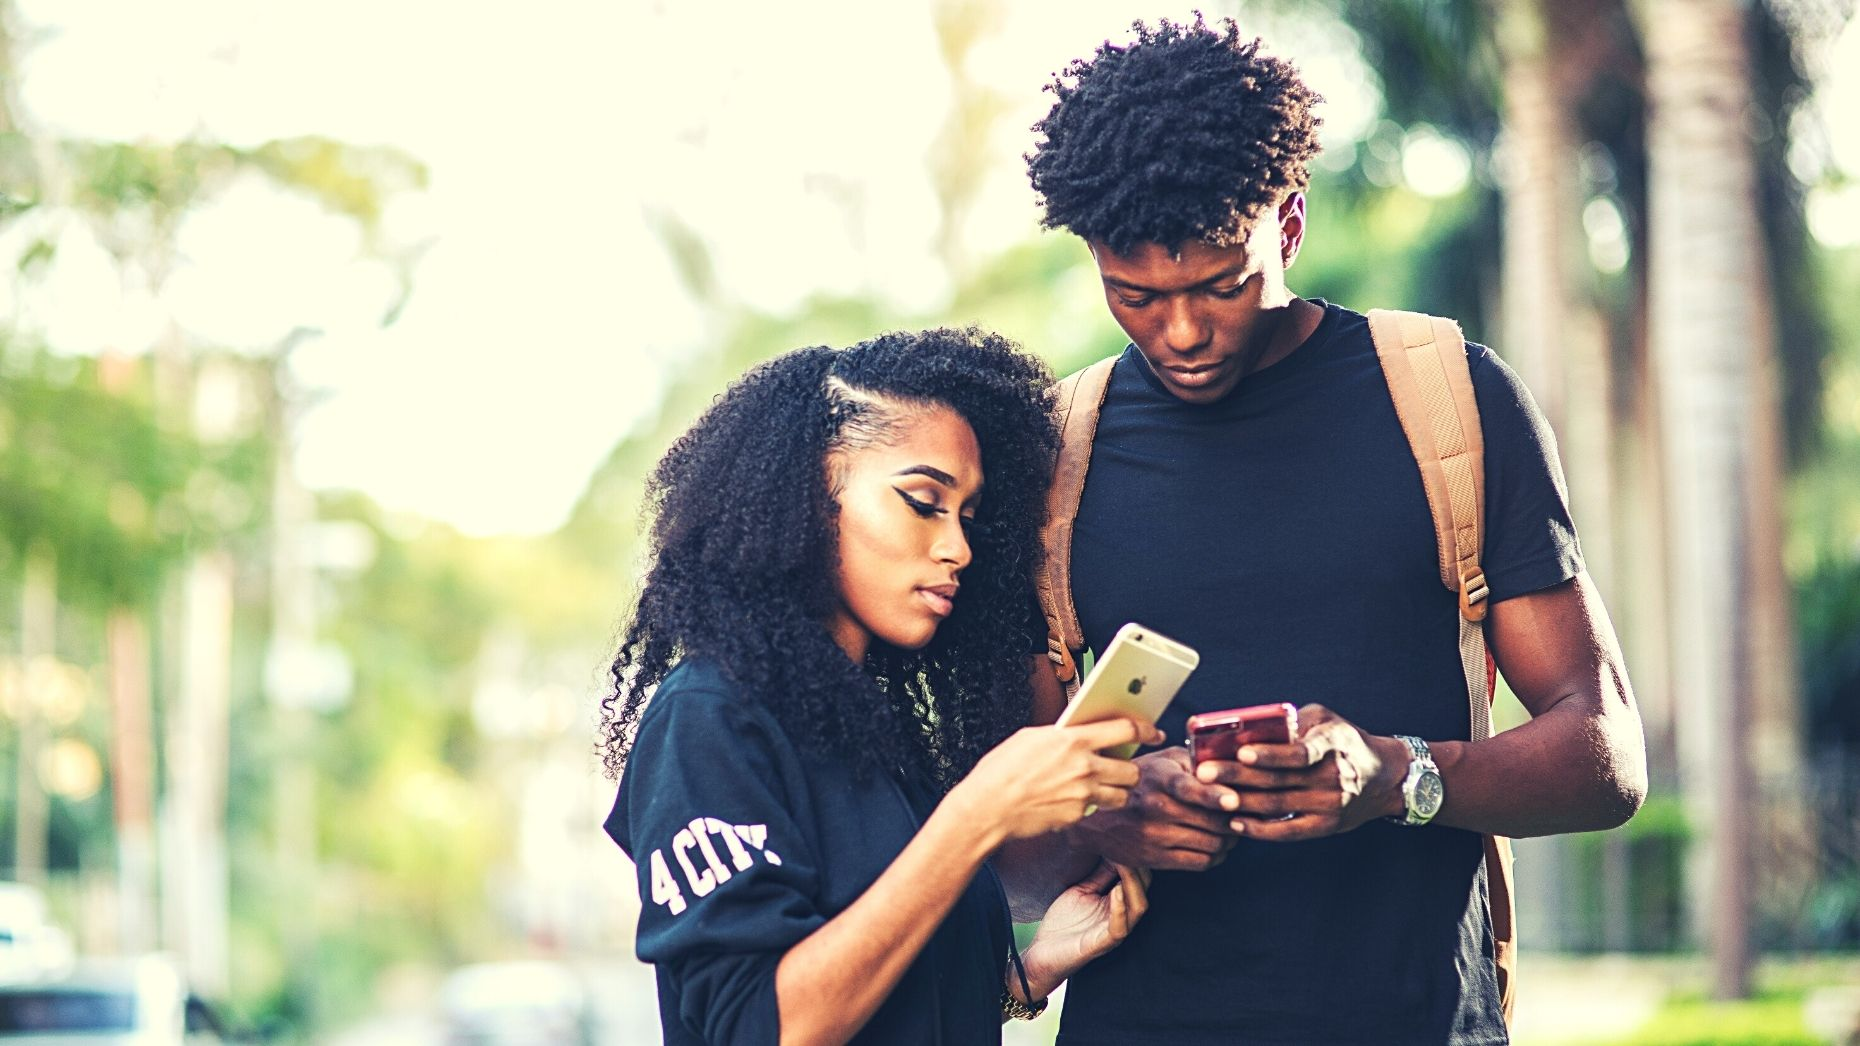 Get after it! 7 text messaging tips to better engage leads and clients